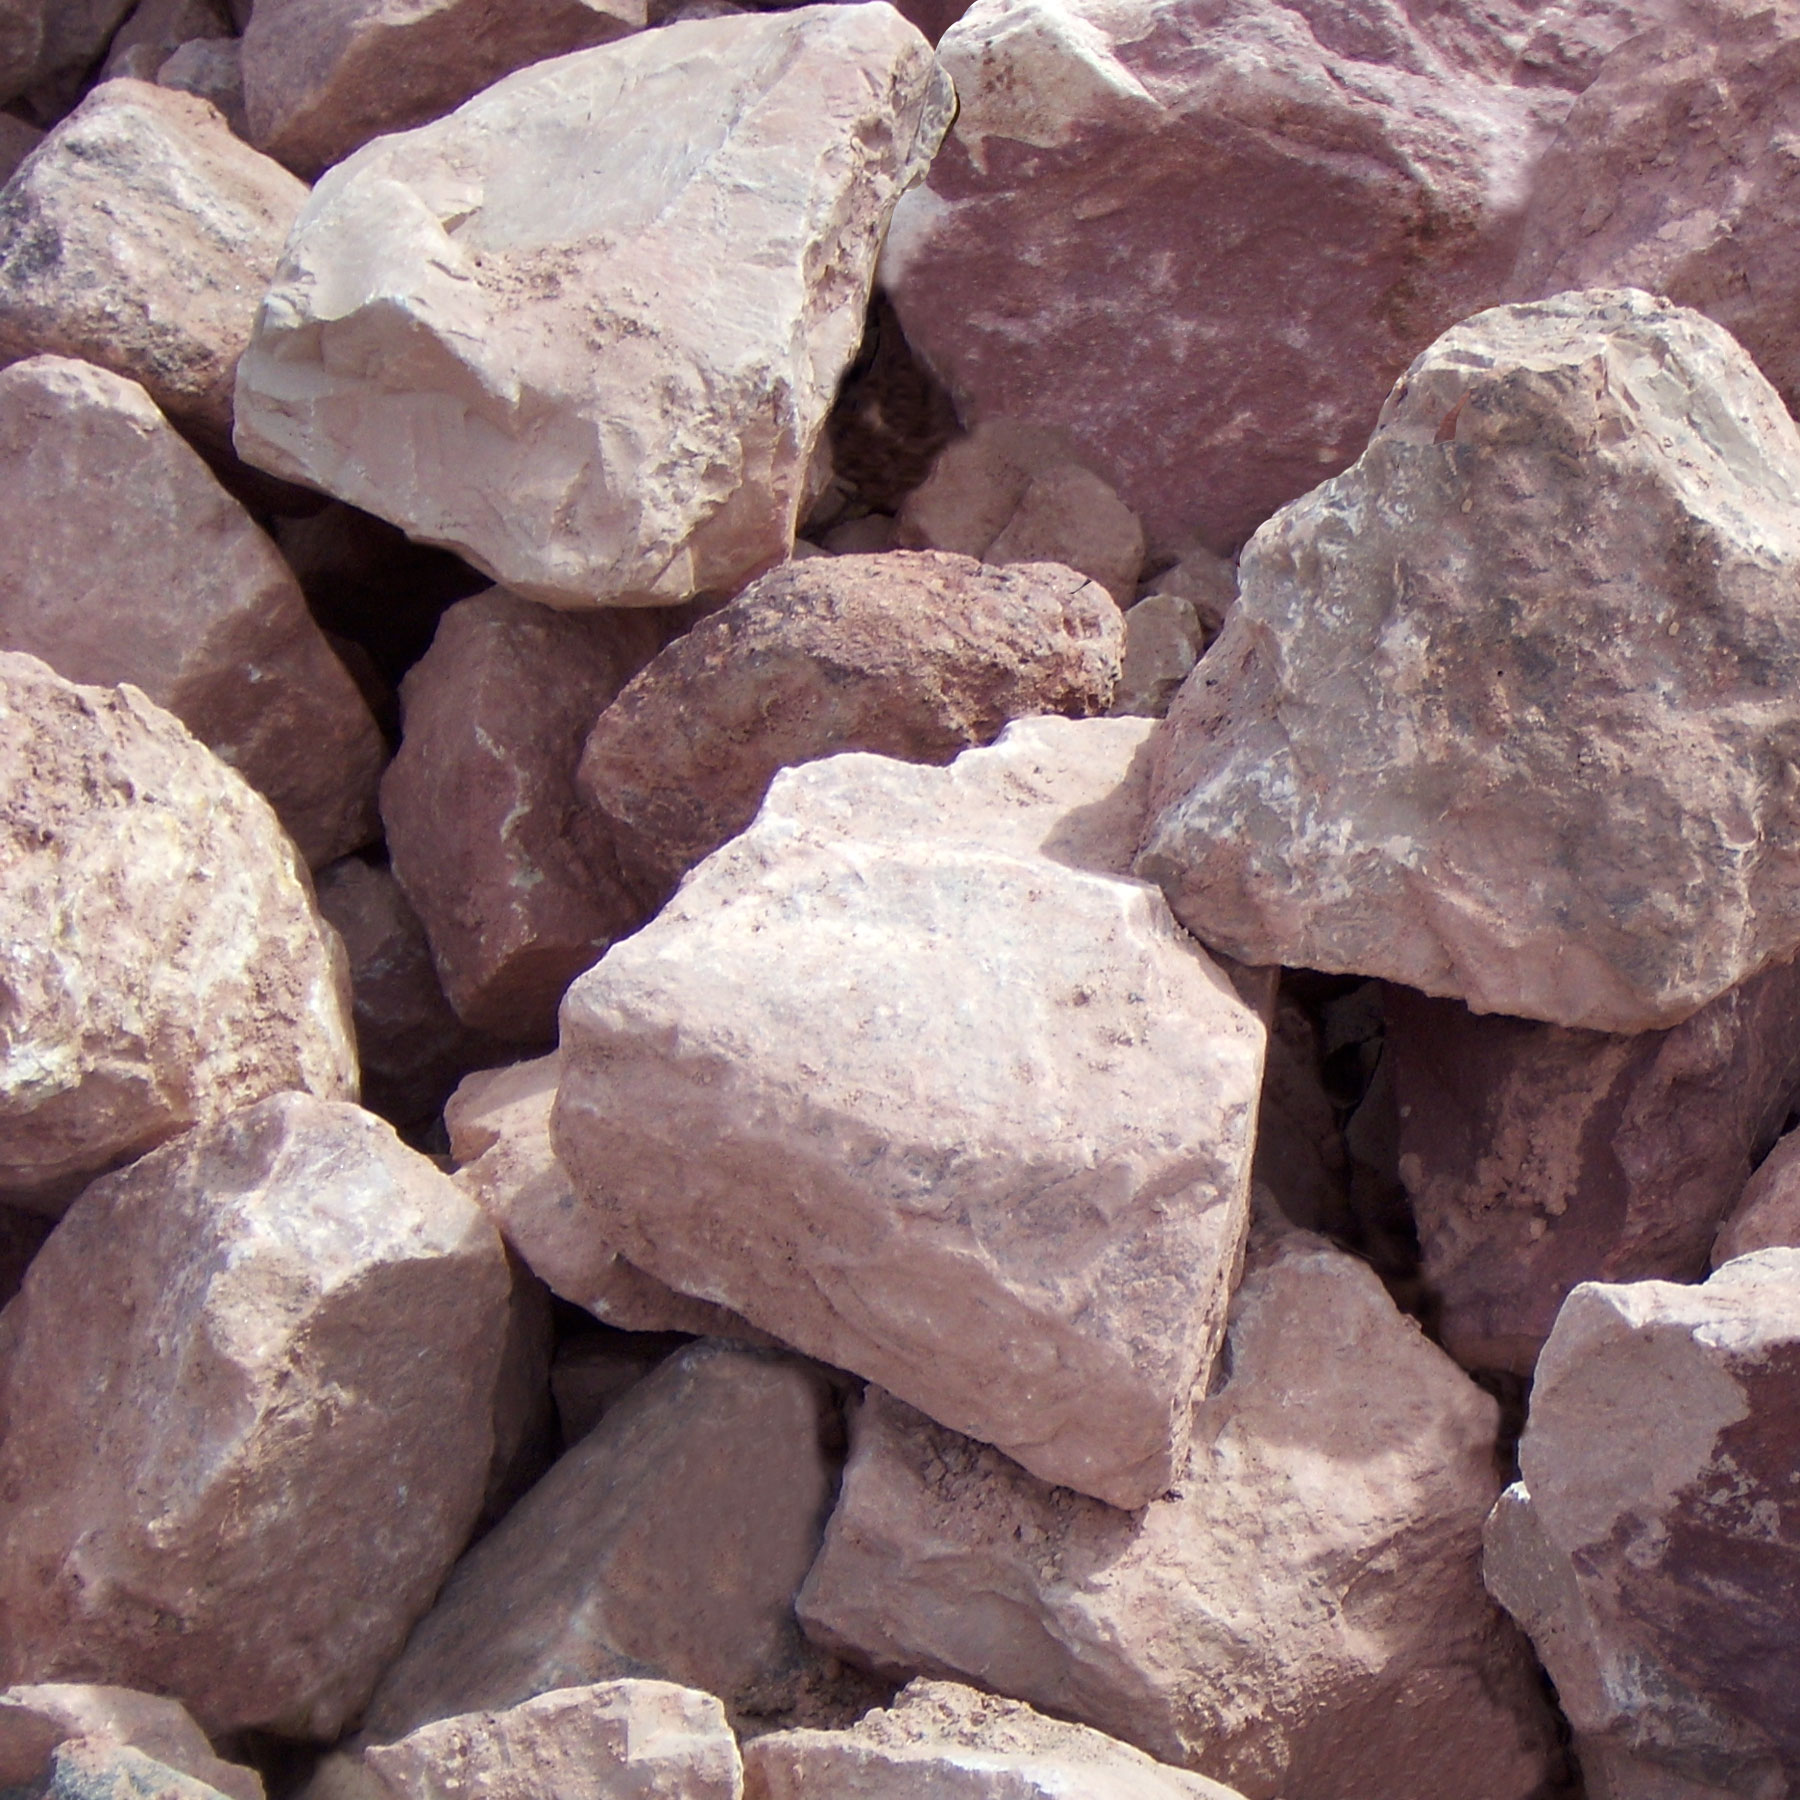 Red Shale Stone : Rhyolite pink shale